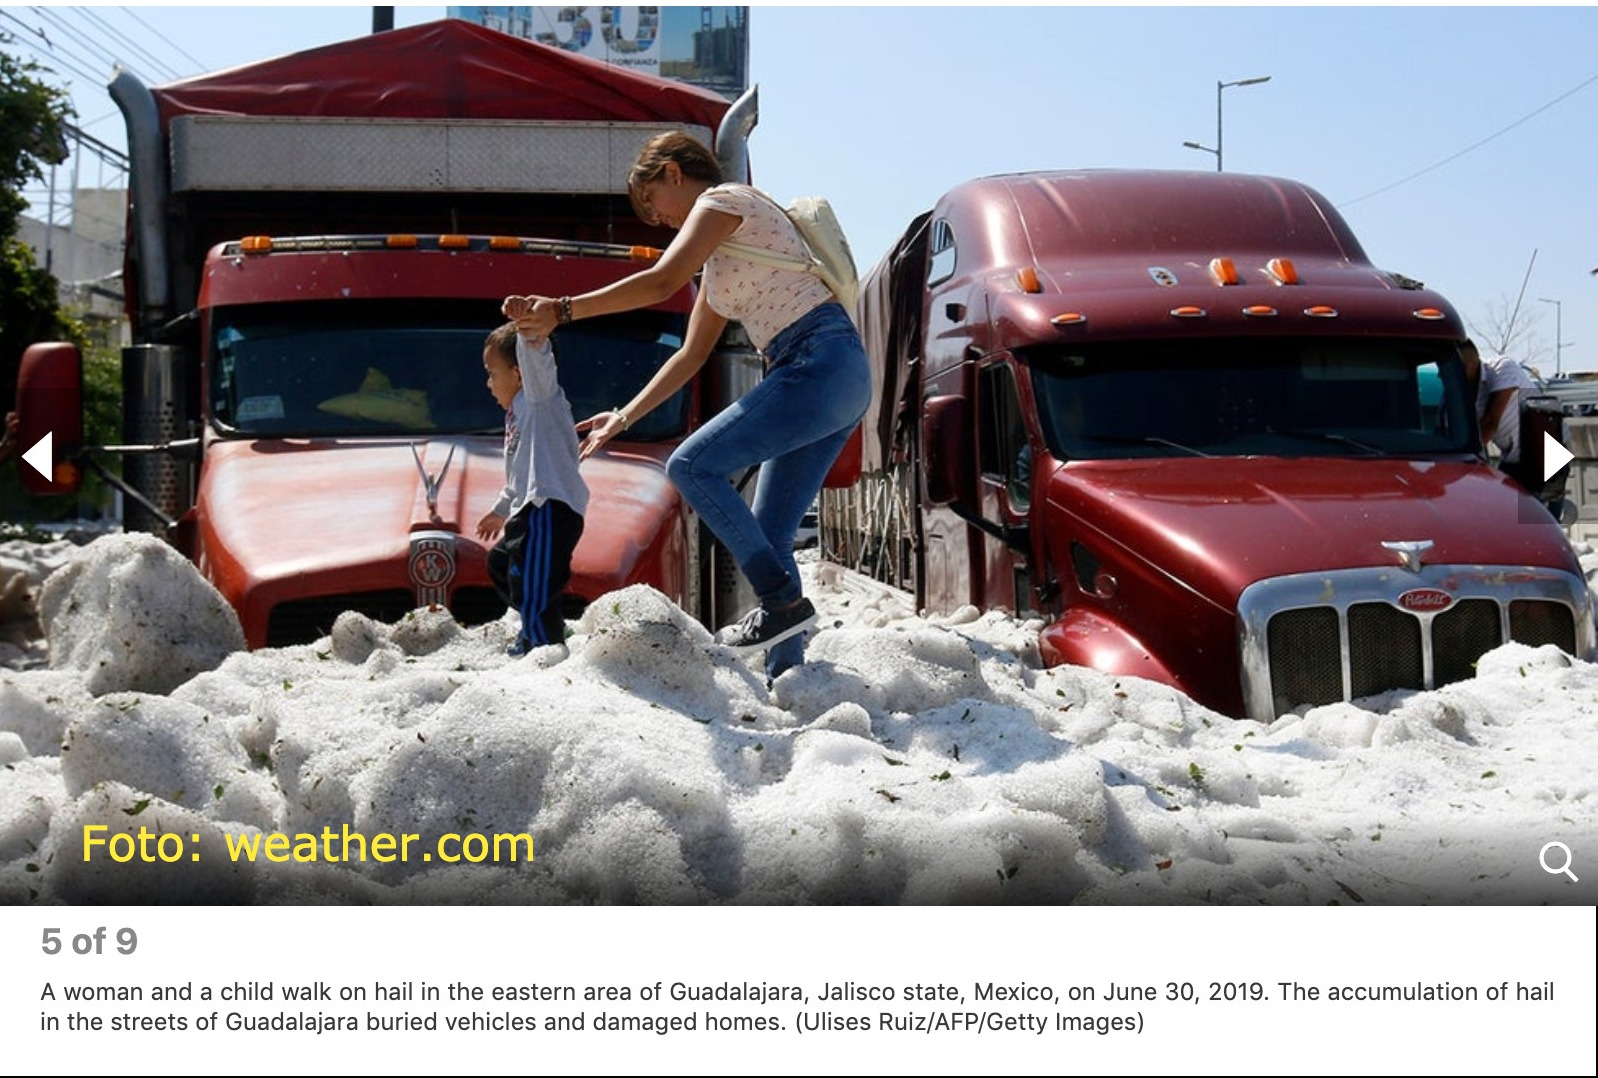 Screenshot of Freak Hailstorm Buries Guadalajara (PHOTOS) _ The Weather Channel.jpg